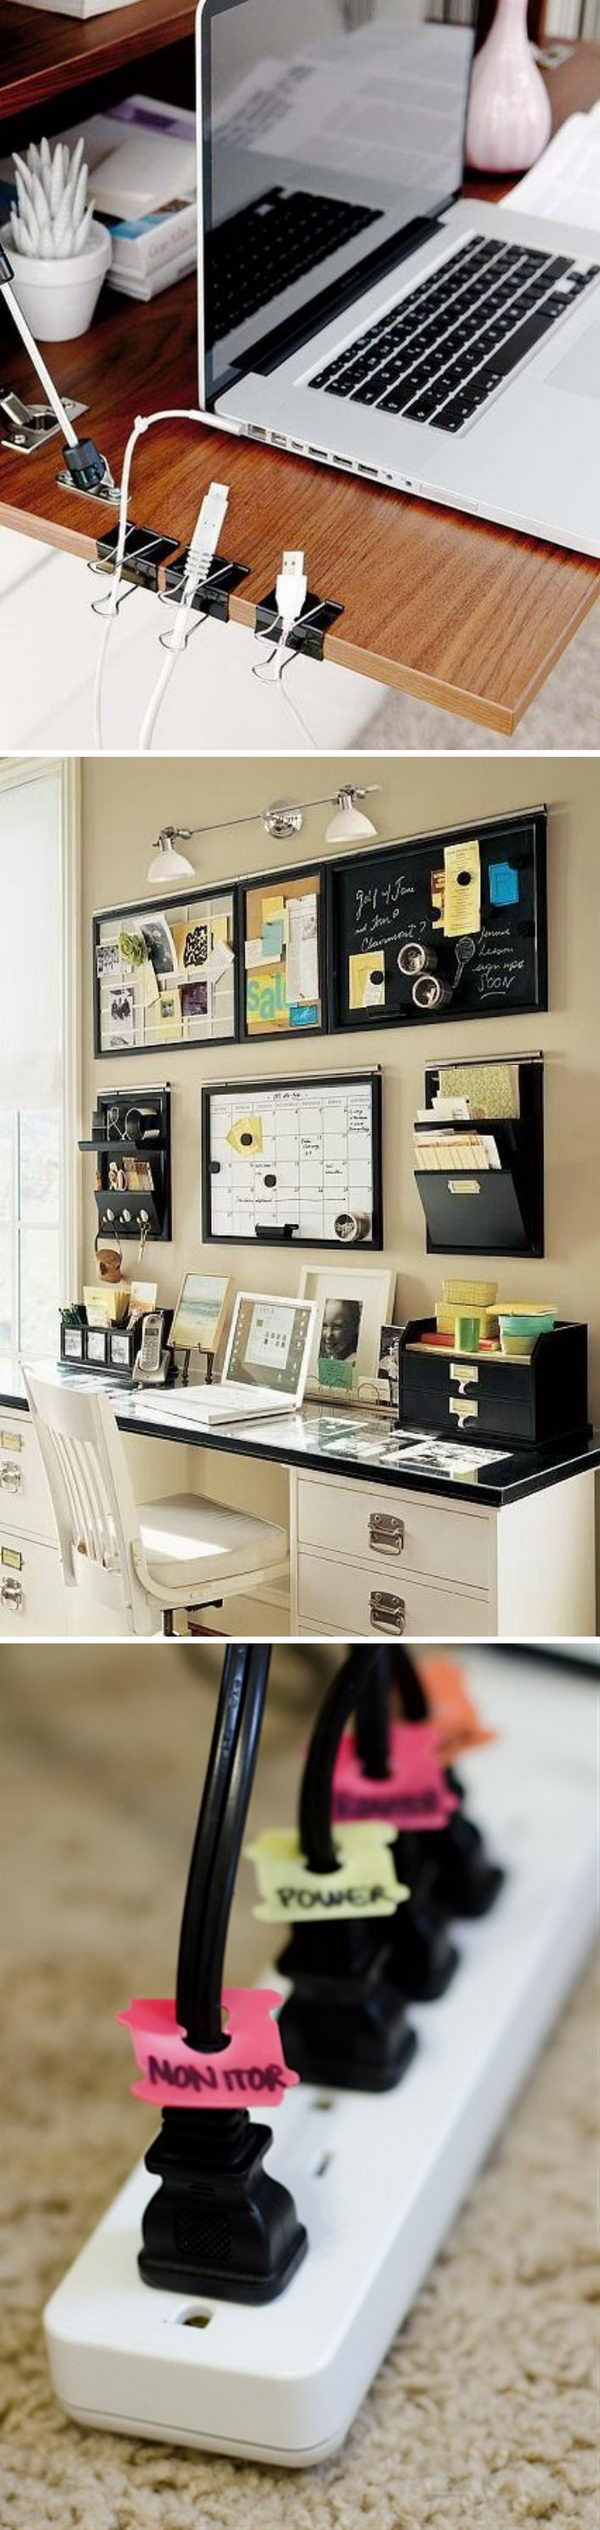 Effective Home Office Organization Ideas.